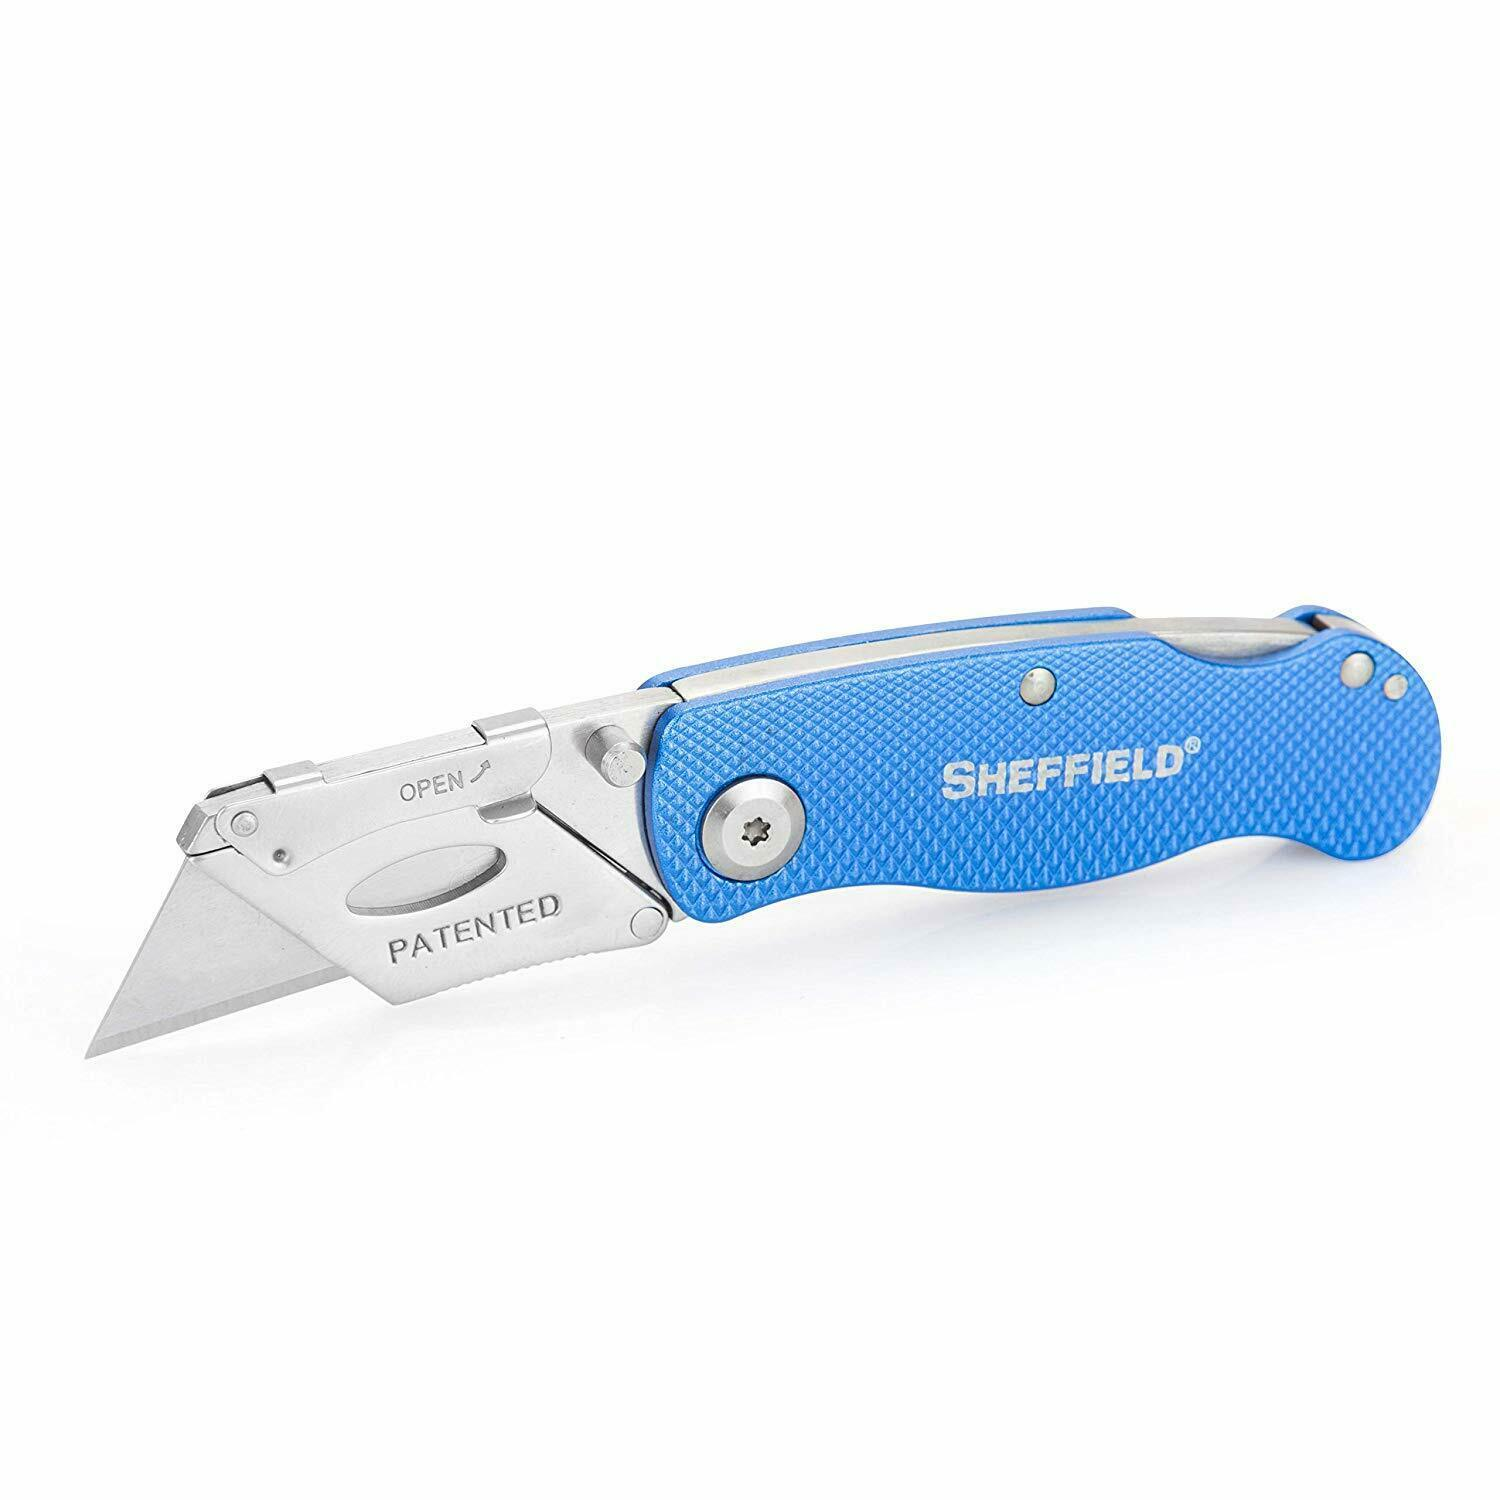 NEW Sheffield 12113 One-Hand Opening Lock-Back Utility Knife 2-3 DAYS DELIVERY - $32.52